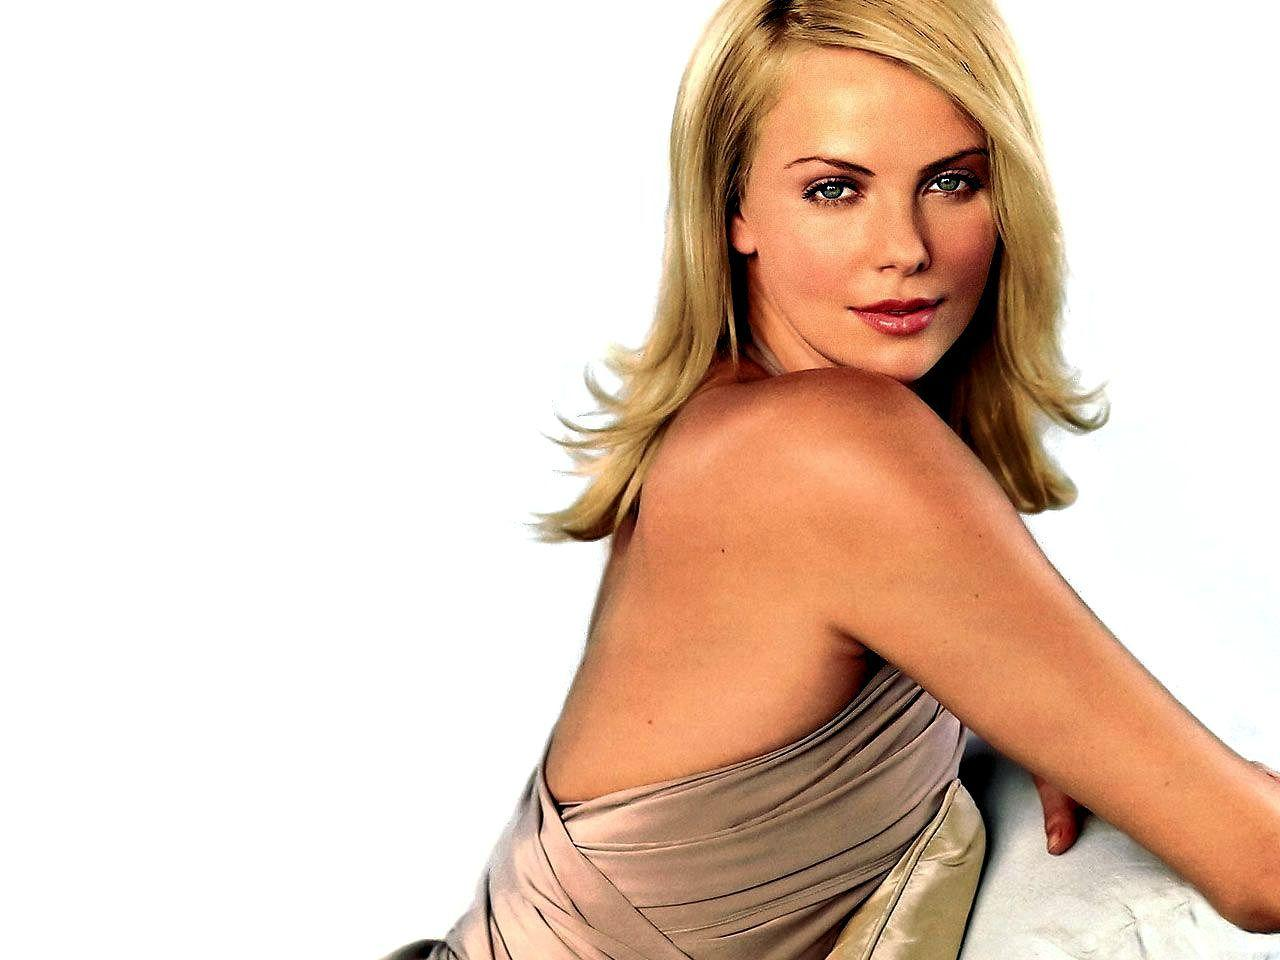 Charlize Theron Wallpaper | 1600x1200 | ID:1595